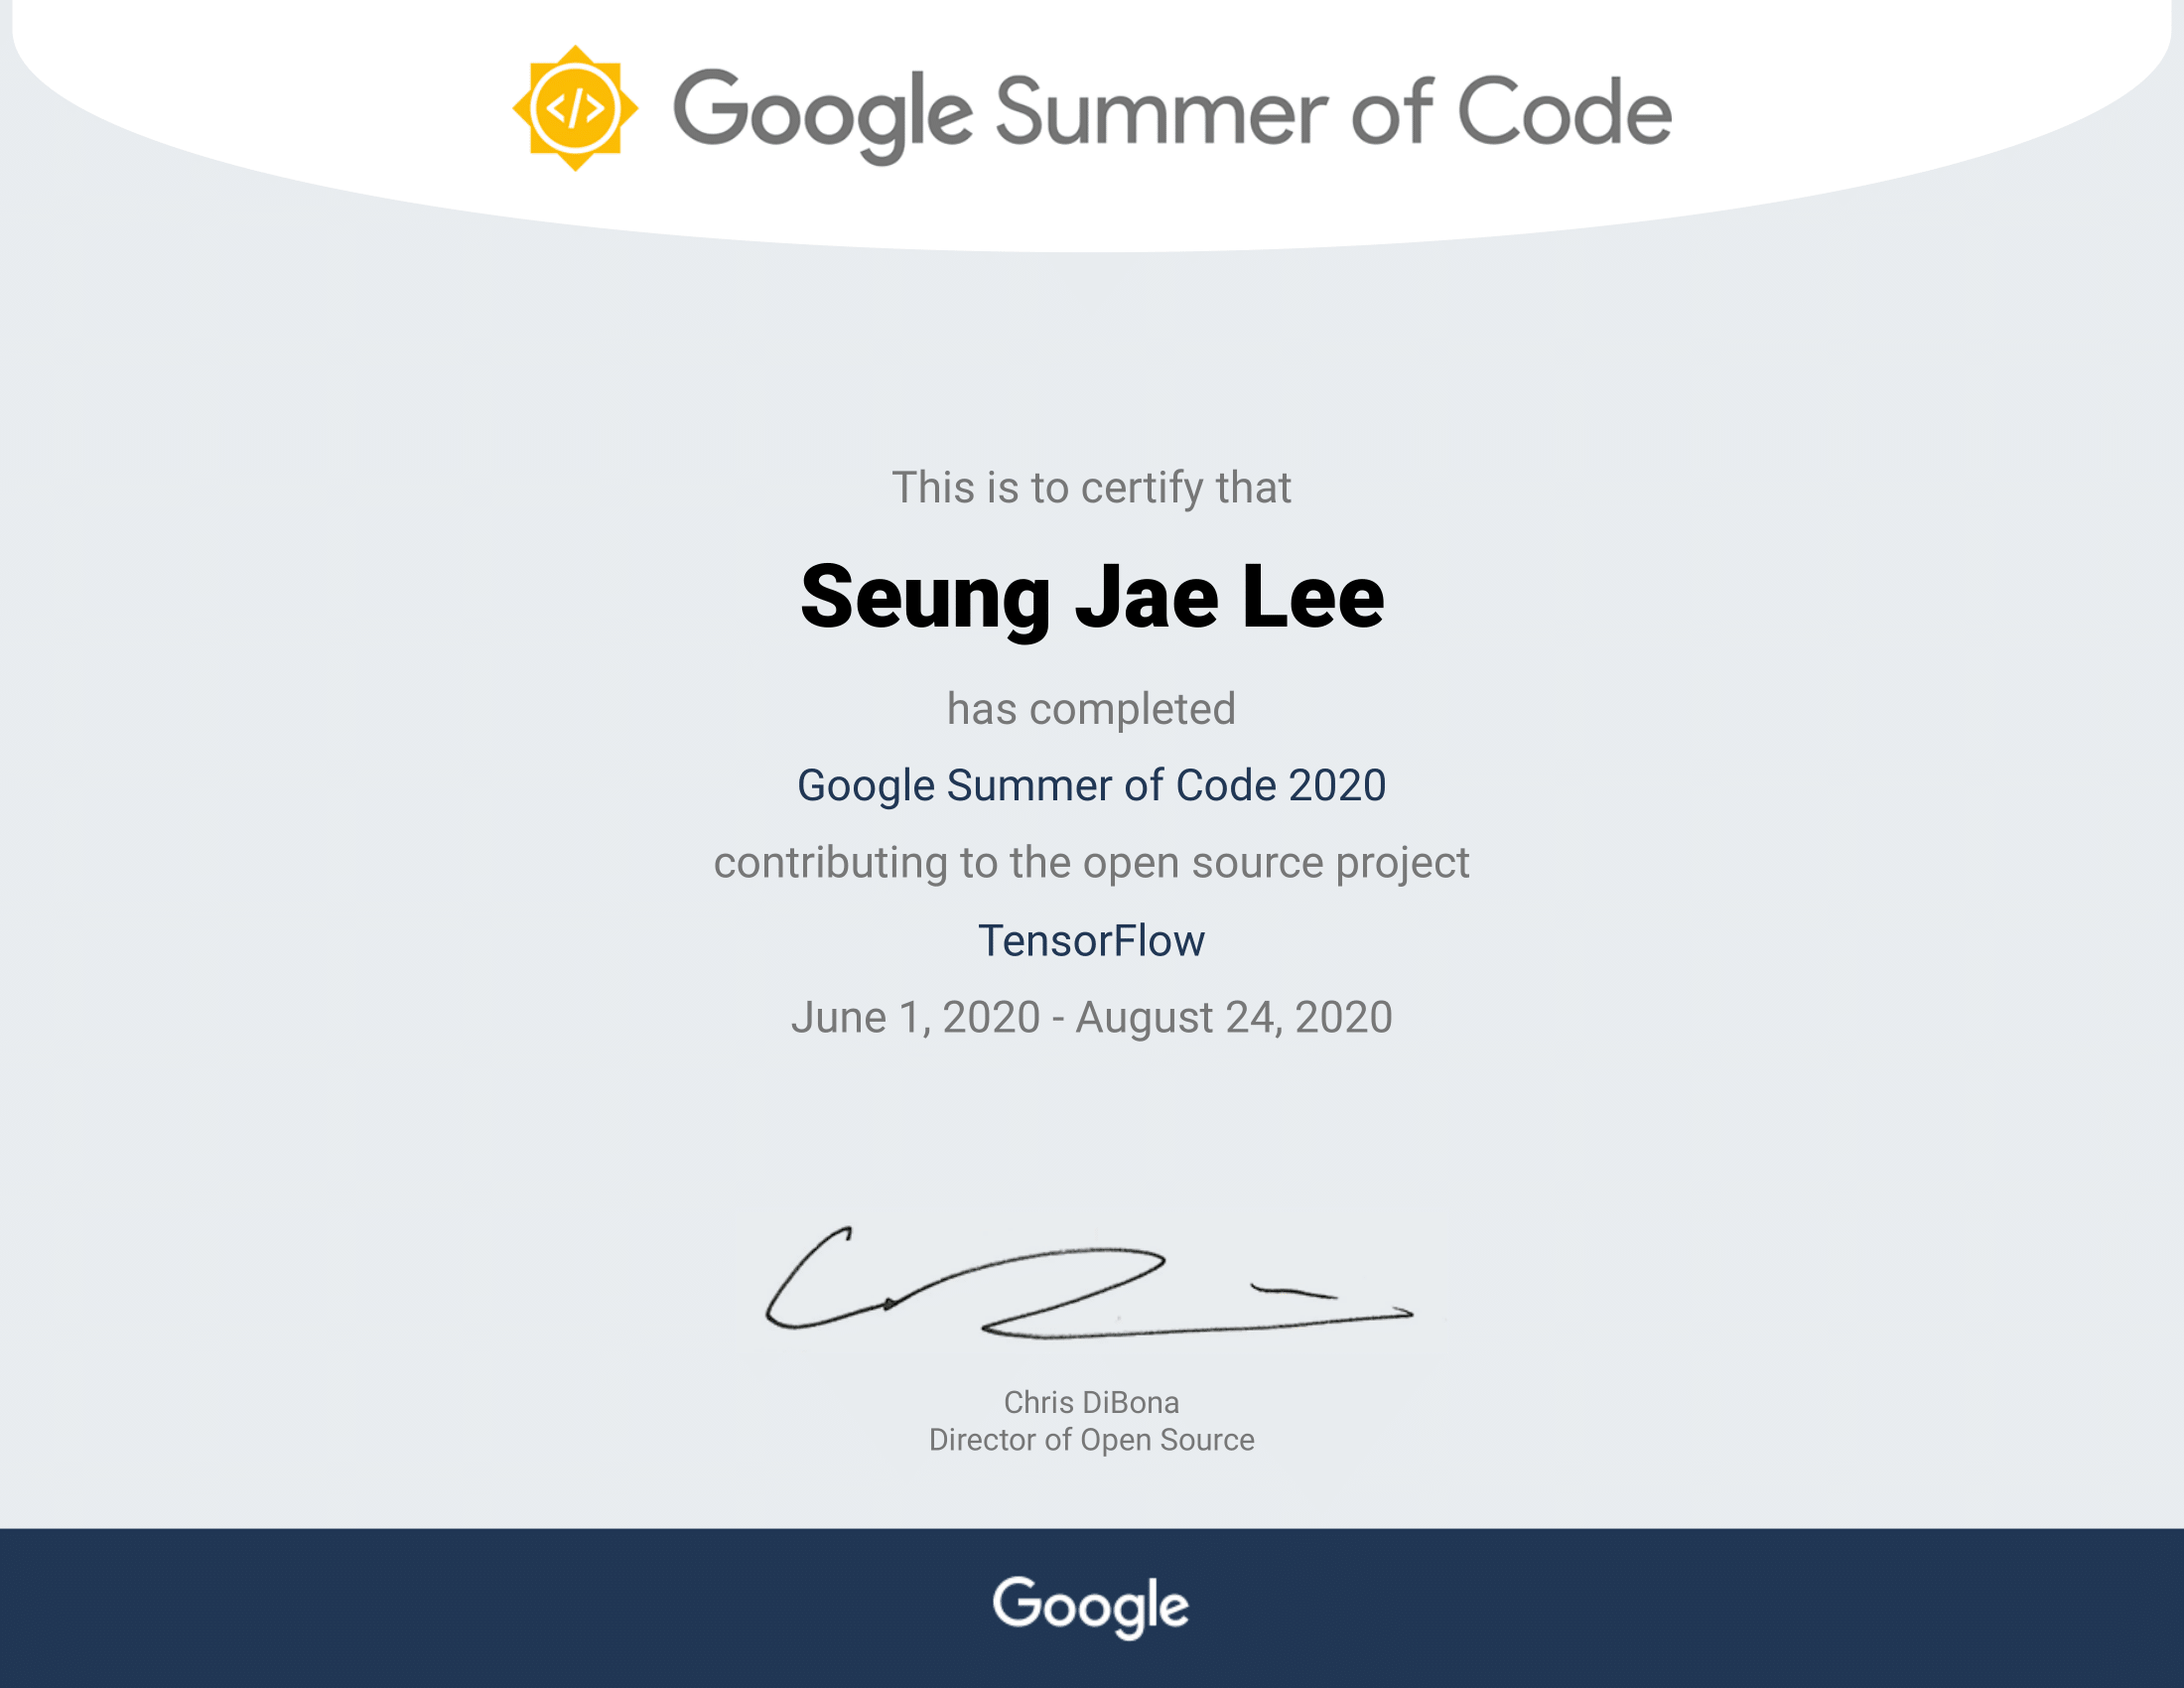 Google Summer of Code 2020 Completion Certificate